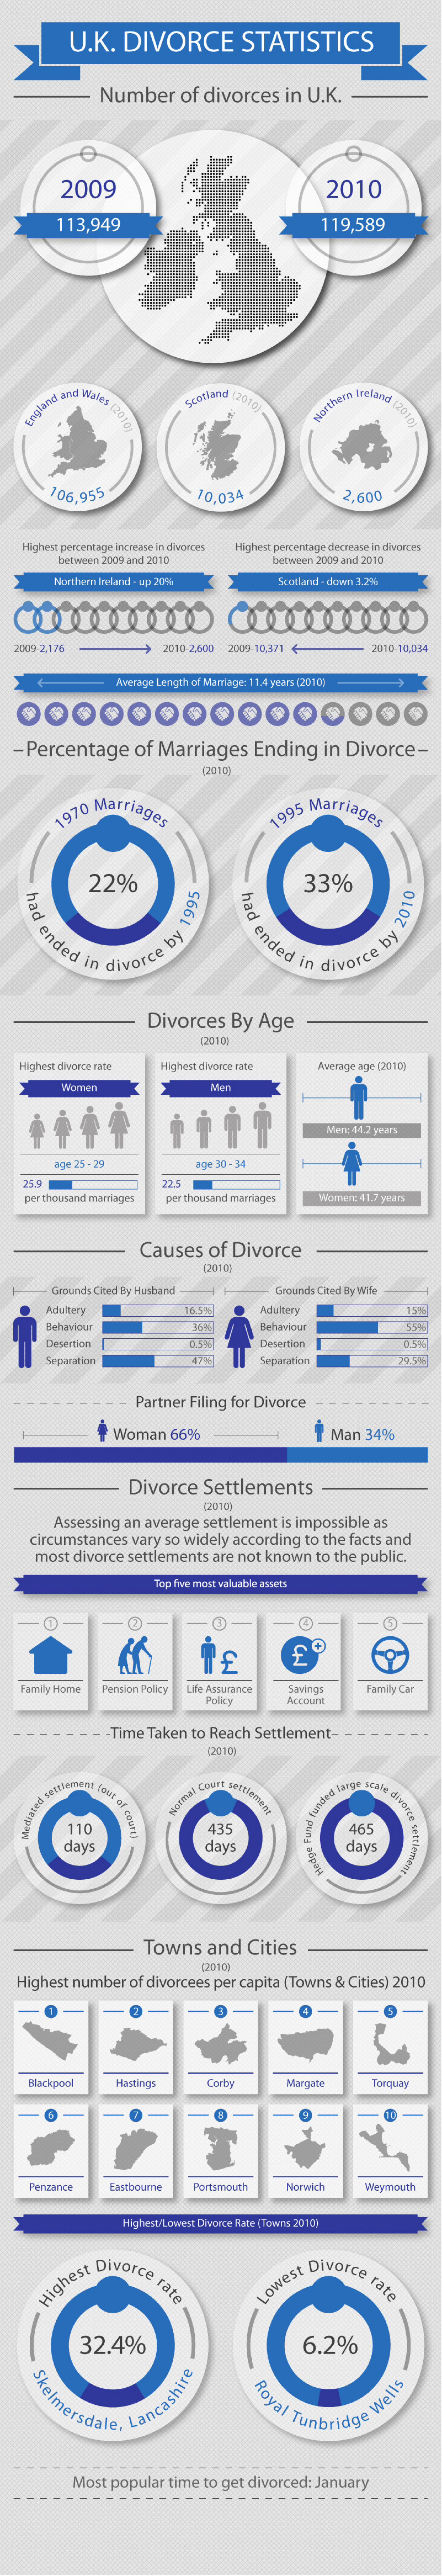 UK Divorce Statistics Infographic